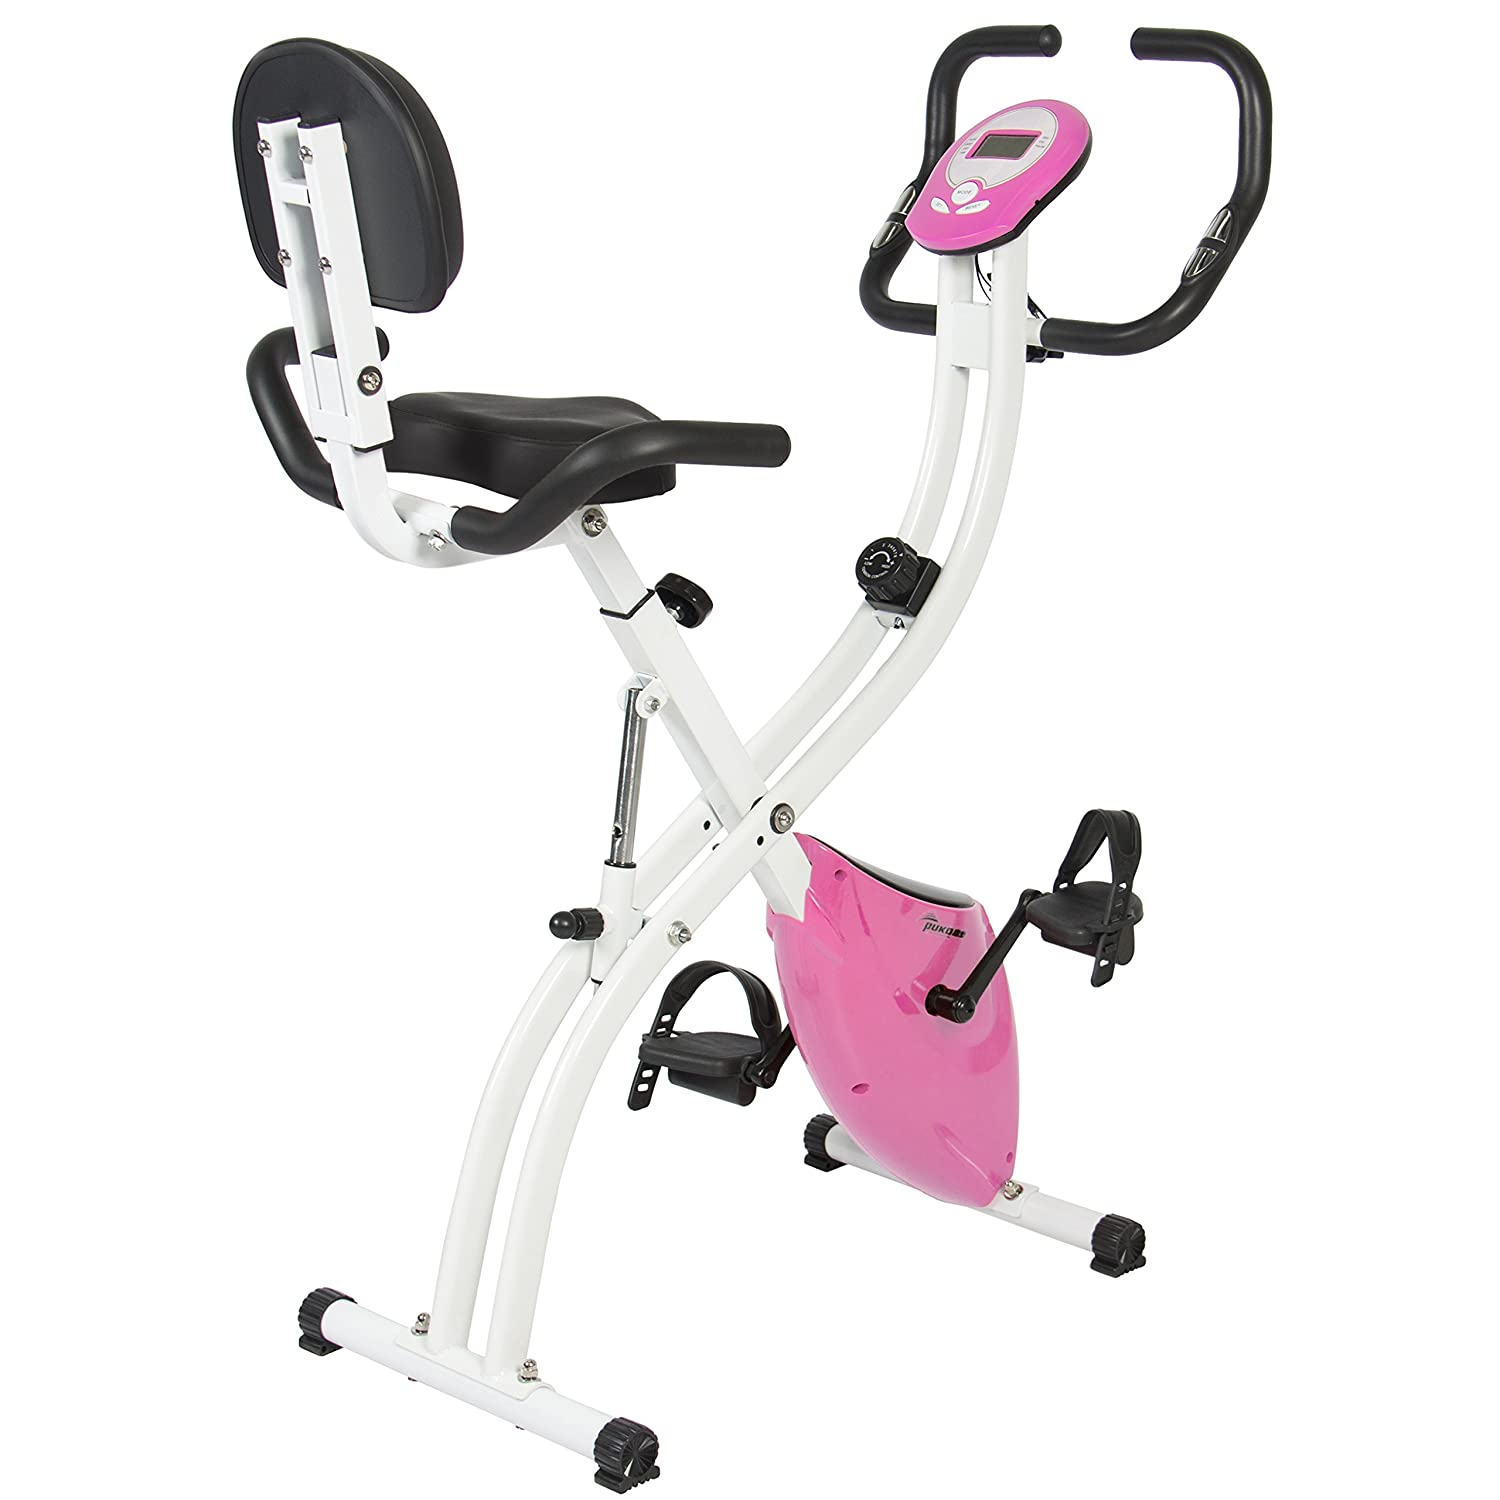 Best Choice Products Folding Upright Exercise Cycling Bicycle for Cardio with Resistance Knob, Adjustable Height